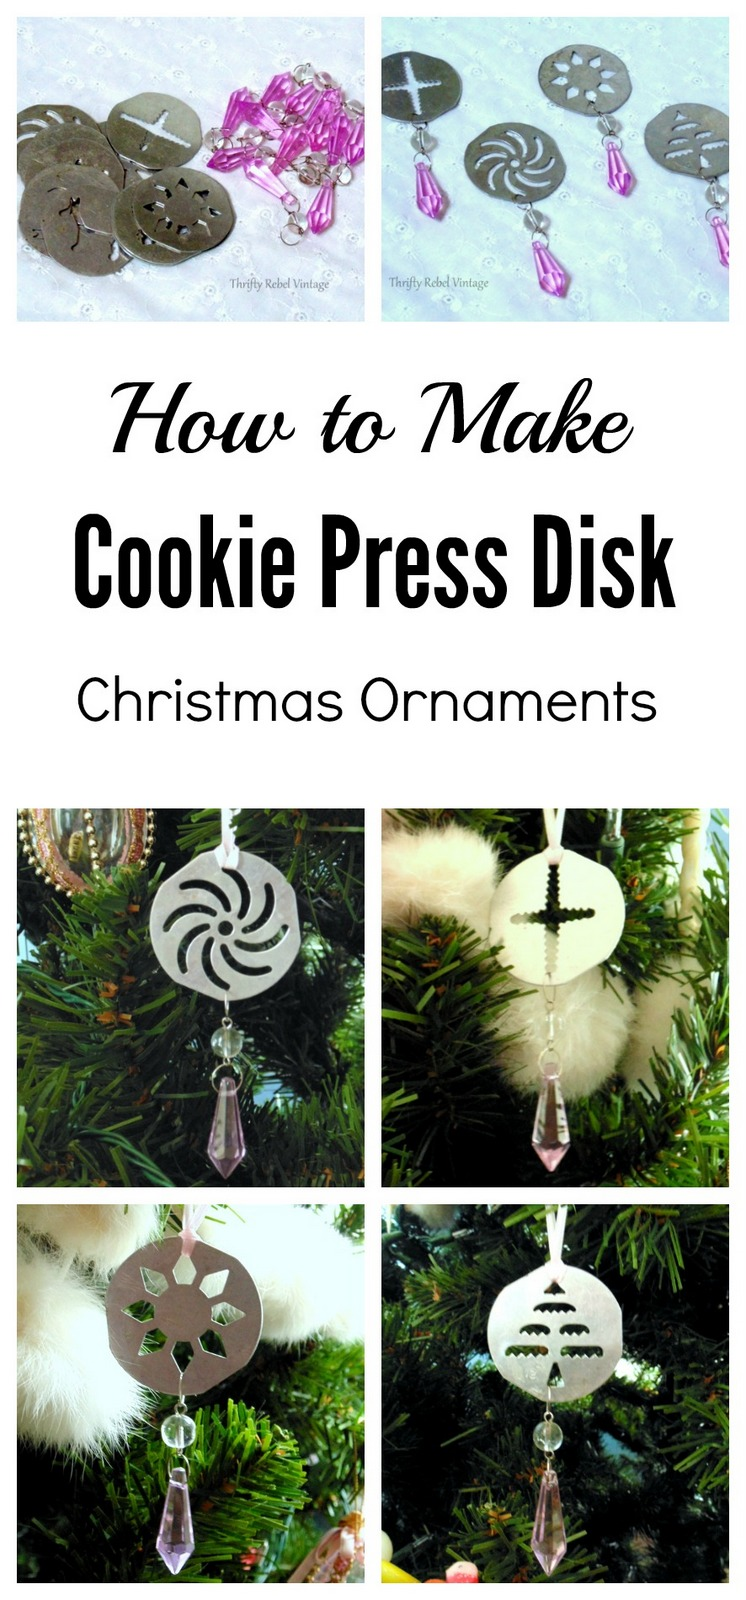 How to make vintage cookie press disk Christmas ornaments